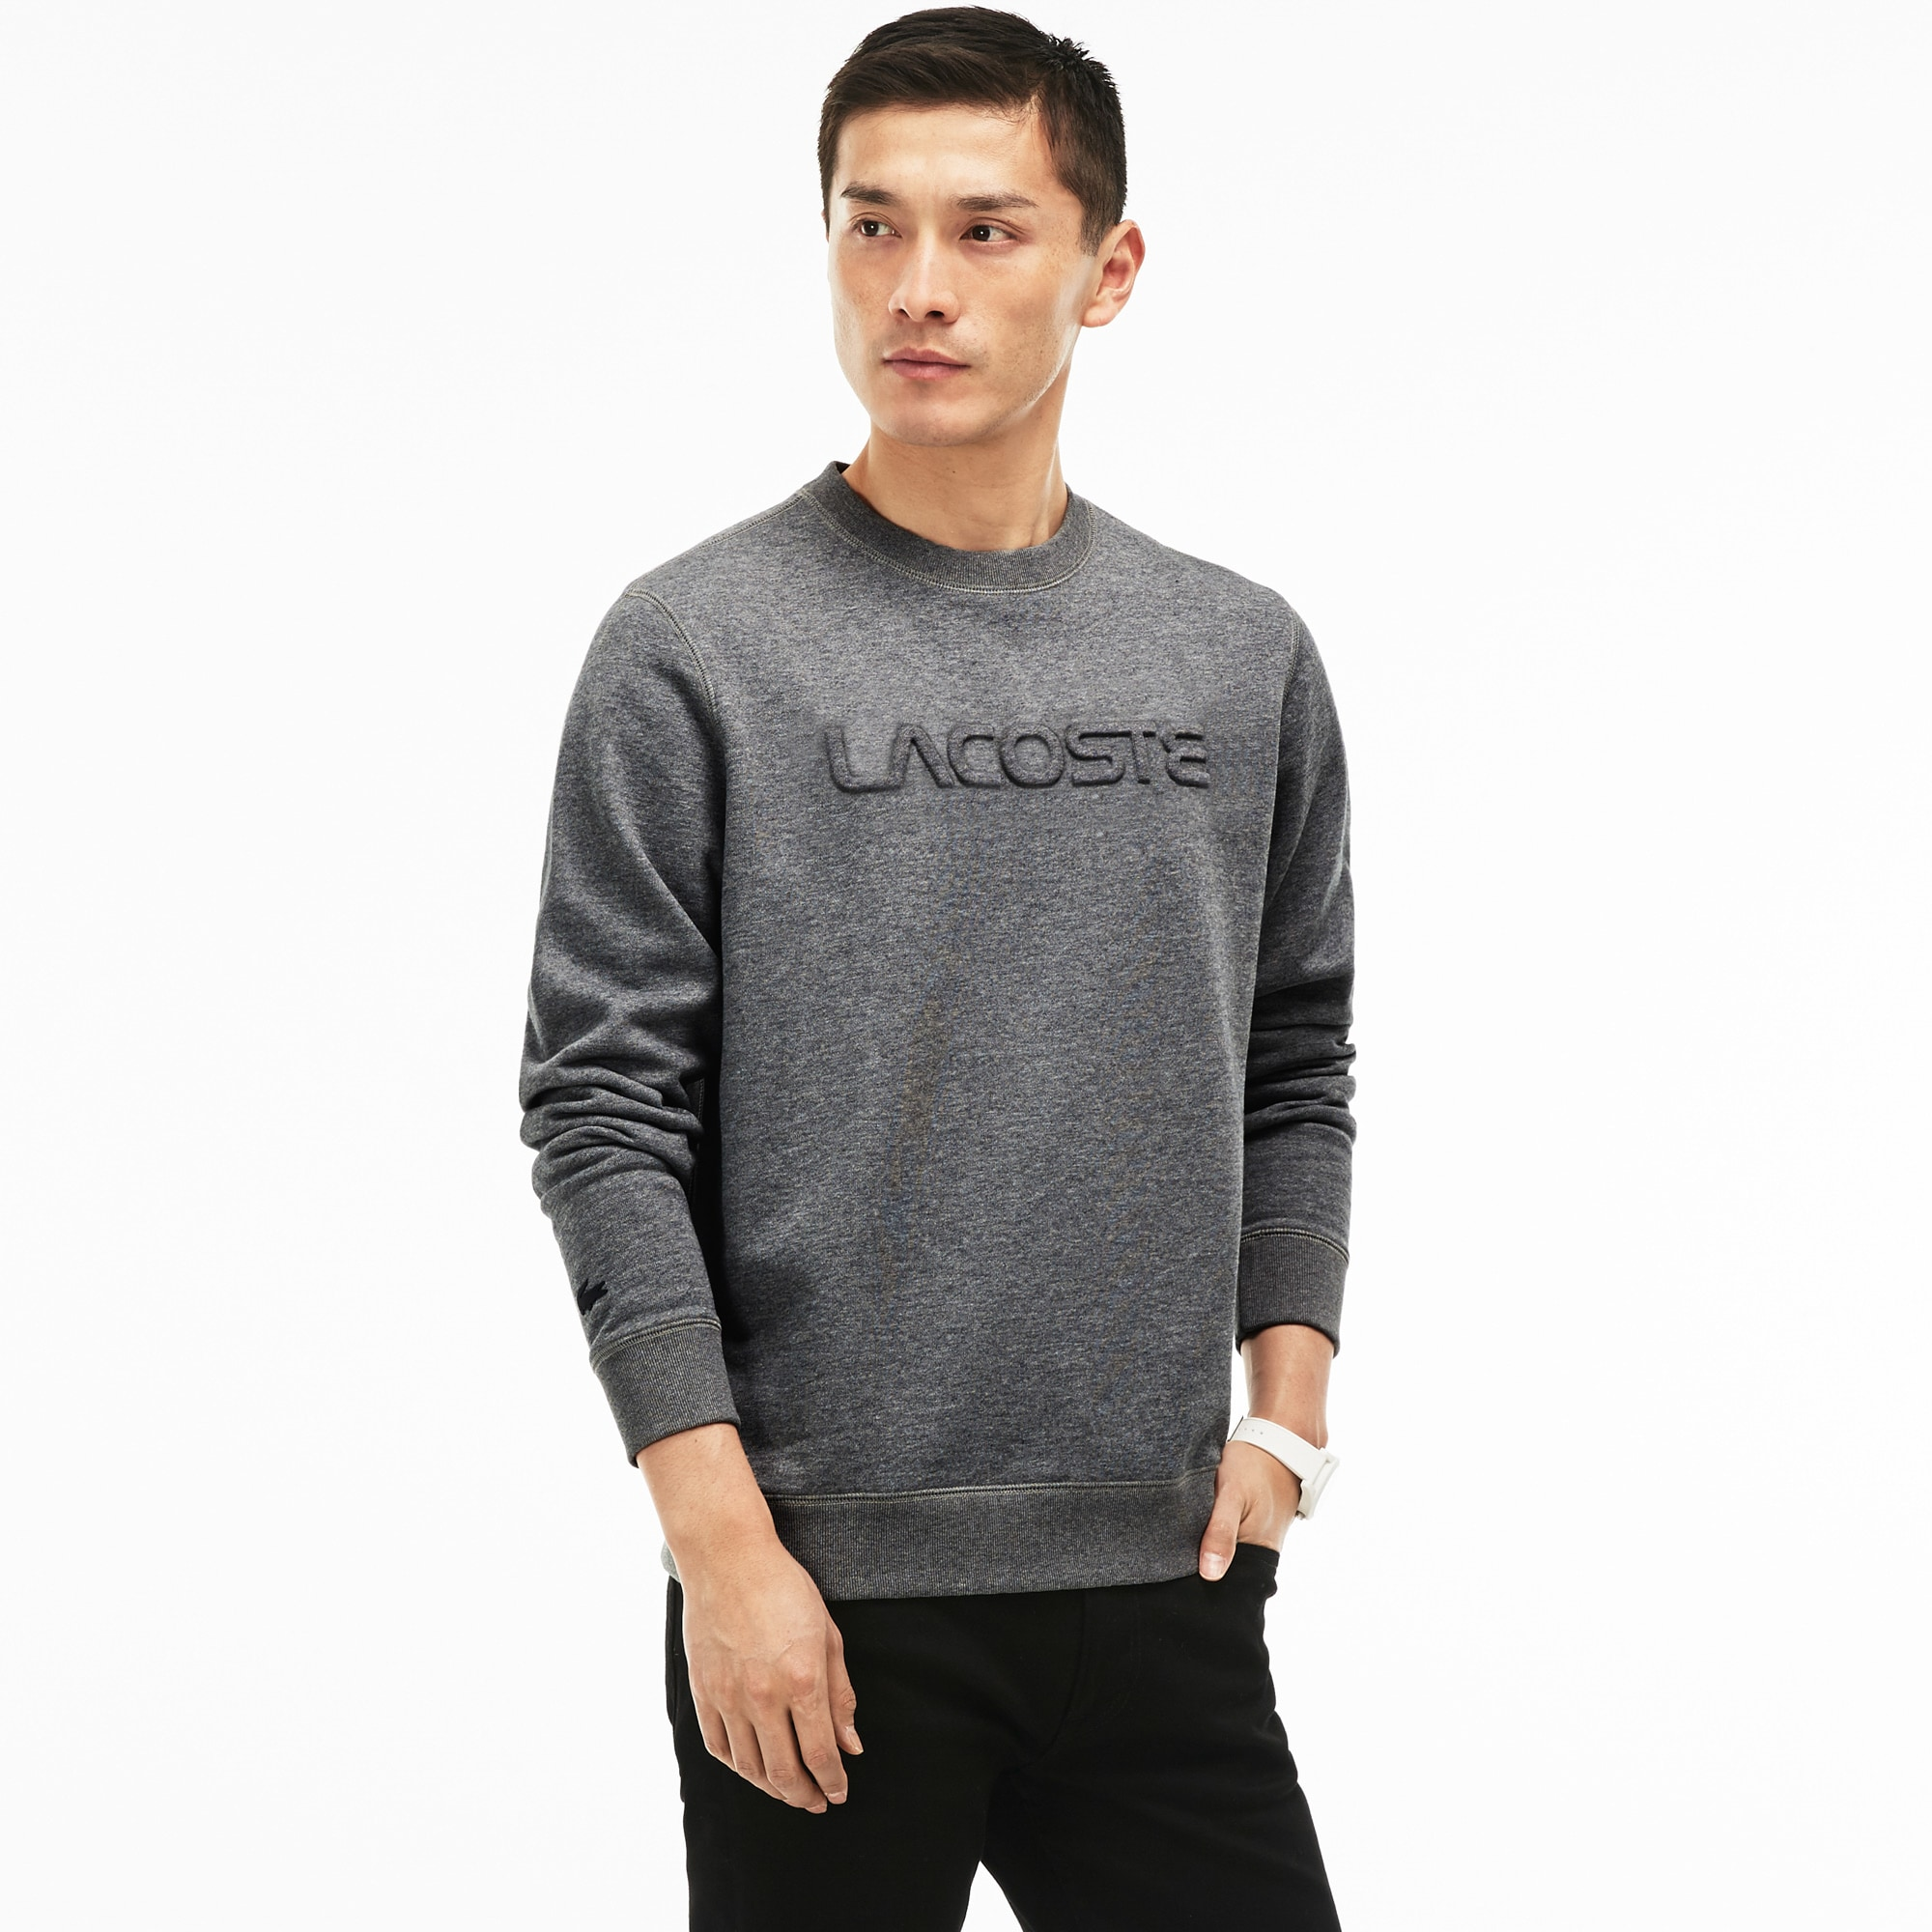 Men's LACOSTE Lettering Fleece Sweatshirt